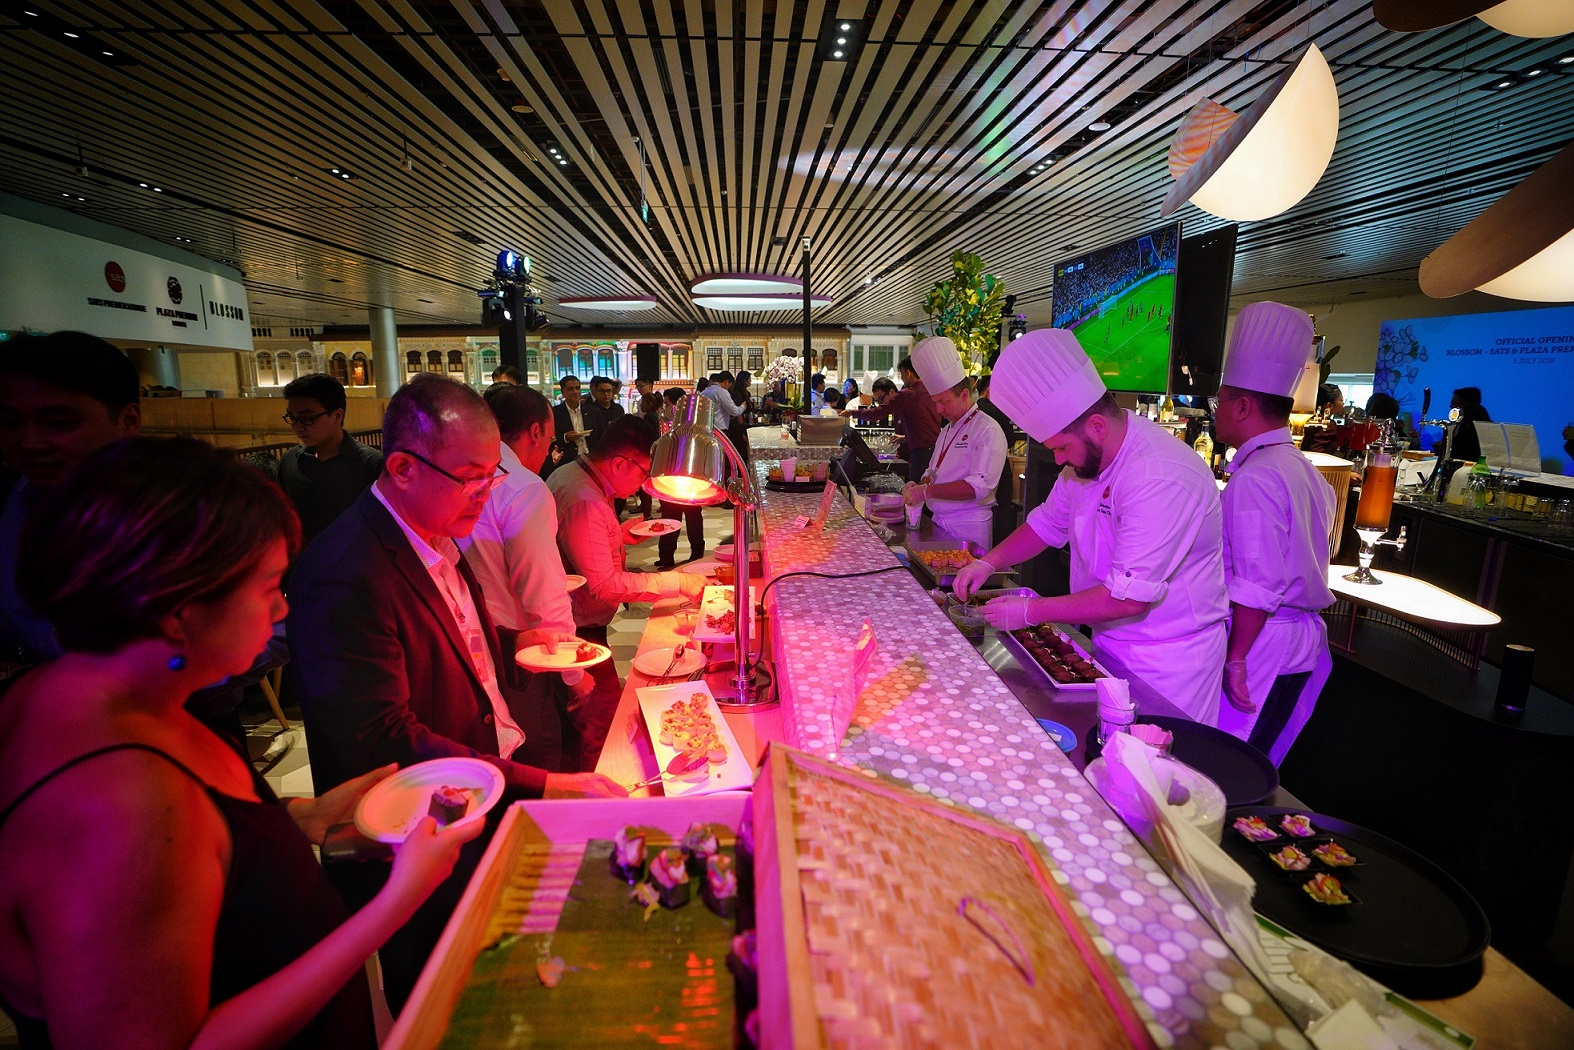 Chefs prepare food on the other side of the bar while guests feast are lined up at the buffet on the other